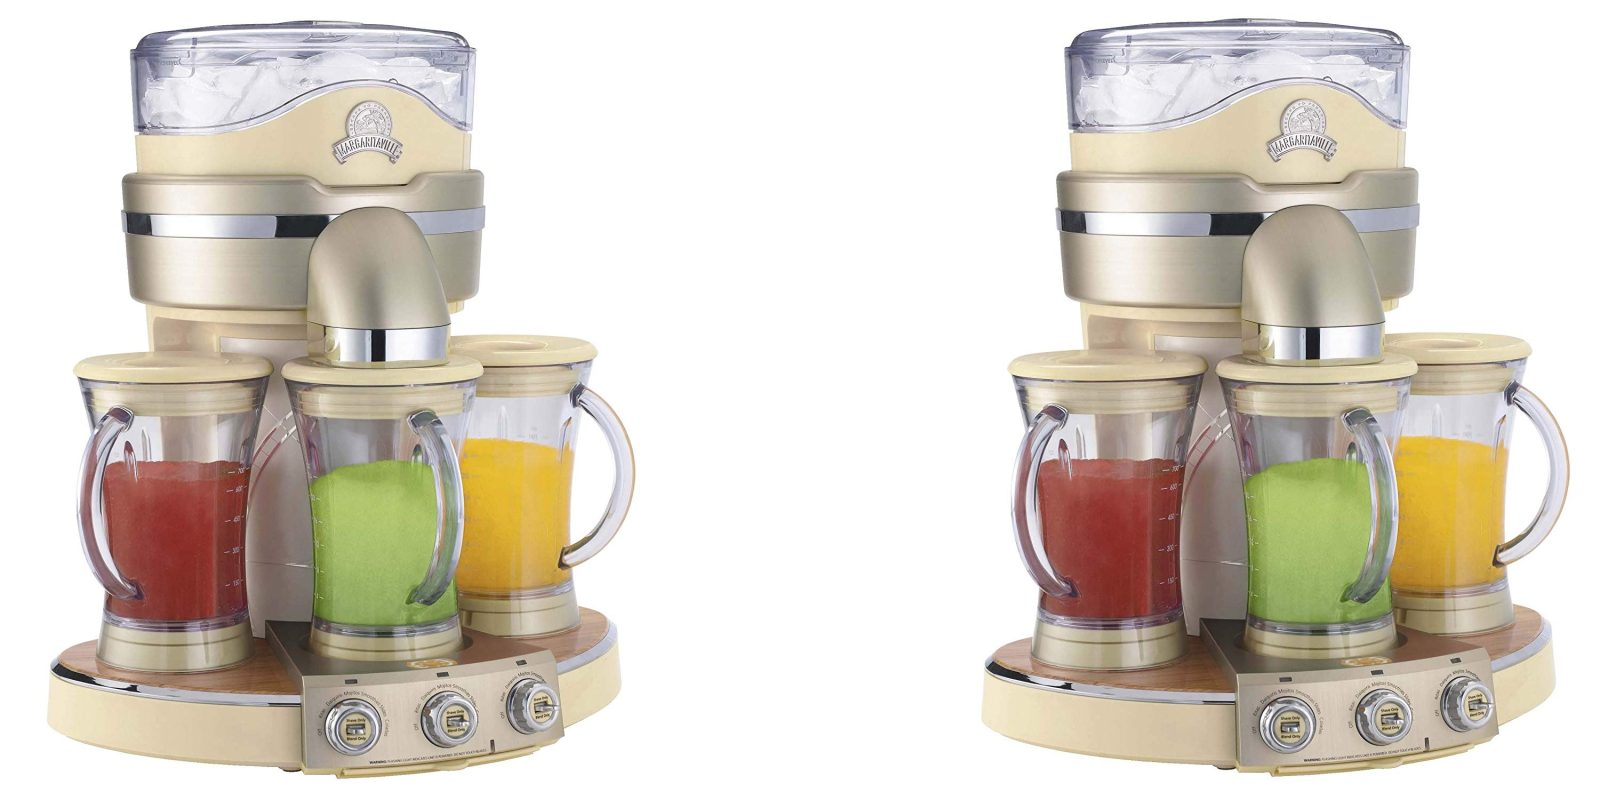 This Margaritaville 72-ounce Drink Maker is now on sale for $330 (Reg. $400+)